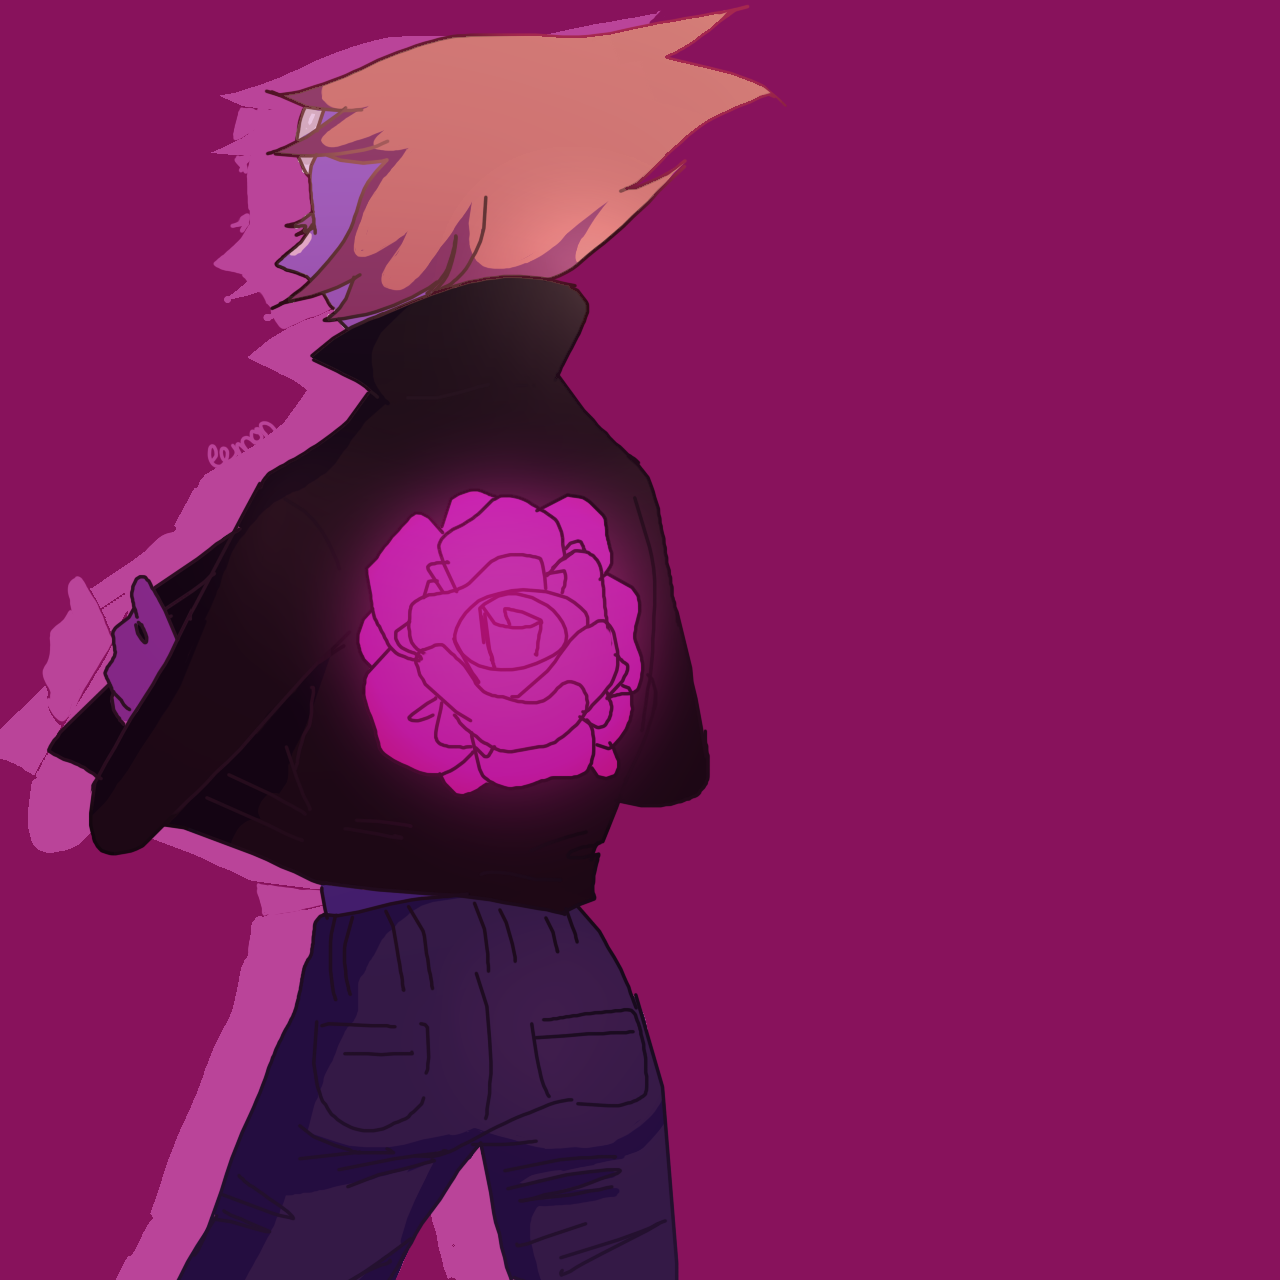 Tell me again that Pearl doesn't have a rose on her jacket I DARE U